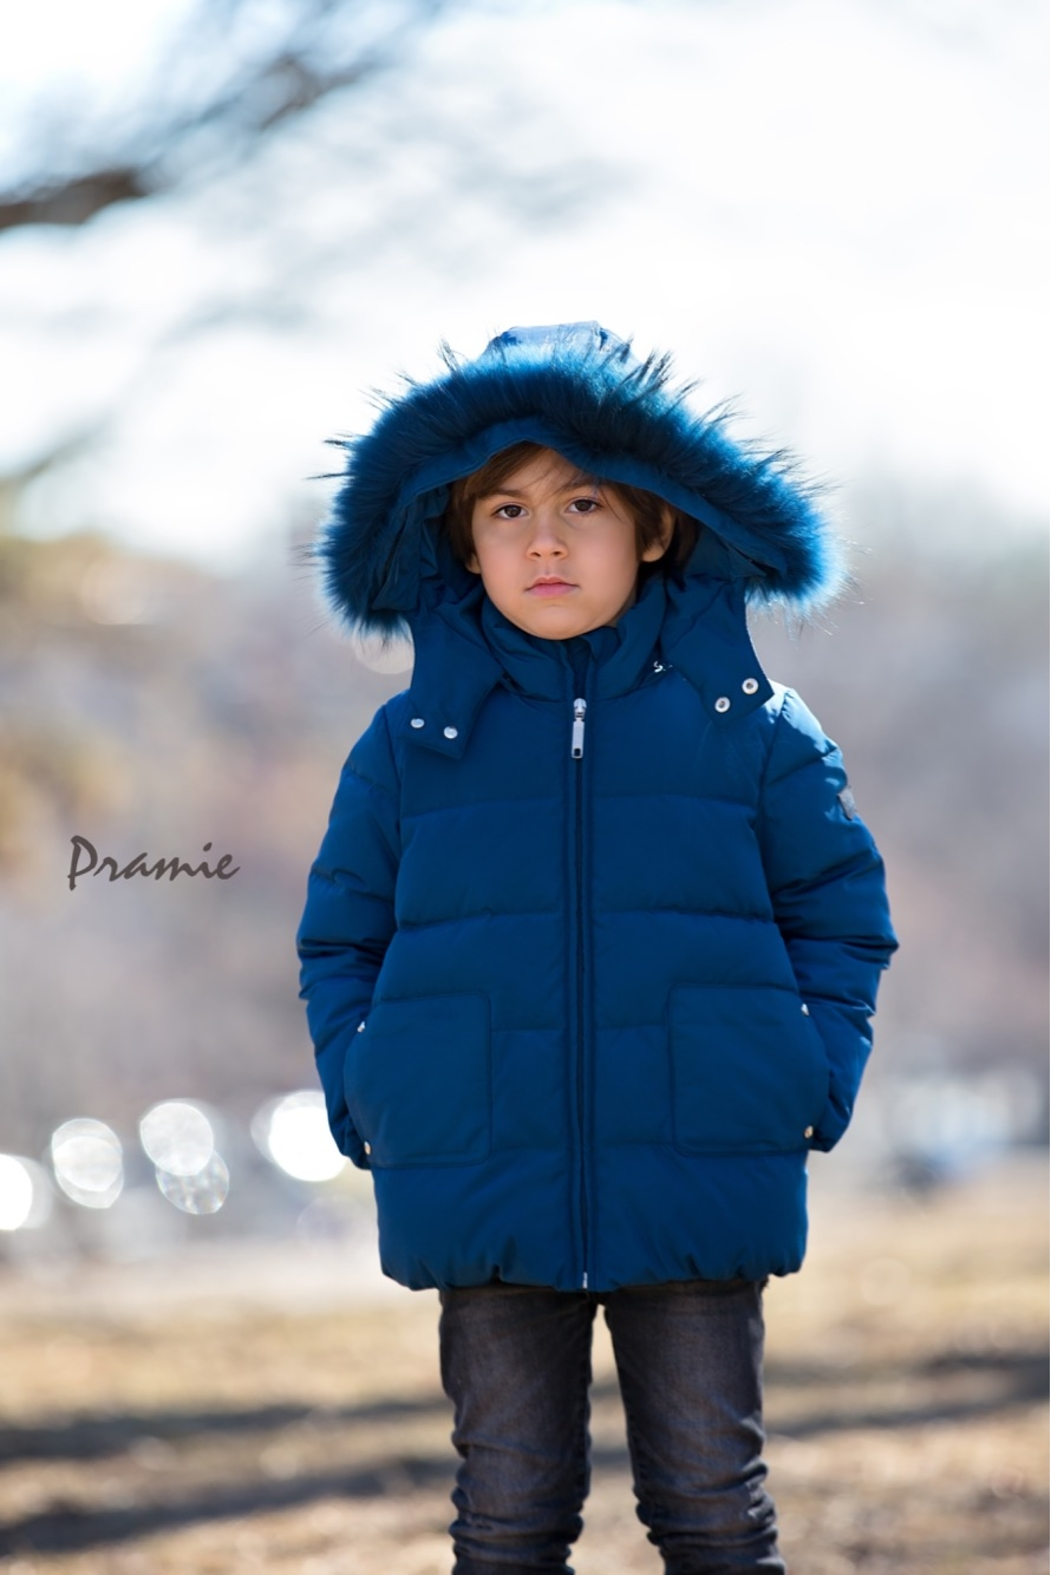 PRAMIE Boys and Girls' Down Filled-Quilted Hooded Jacket Genuine Fur-Trimmed (Unisex) - Front Cropped Image